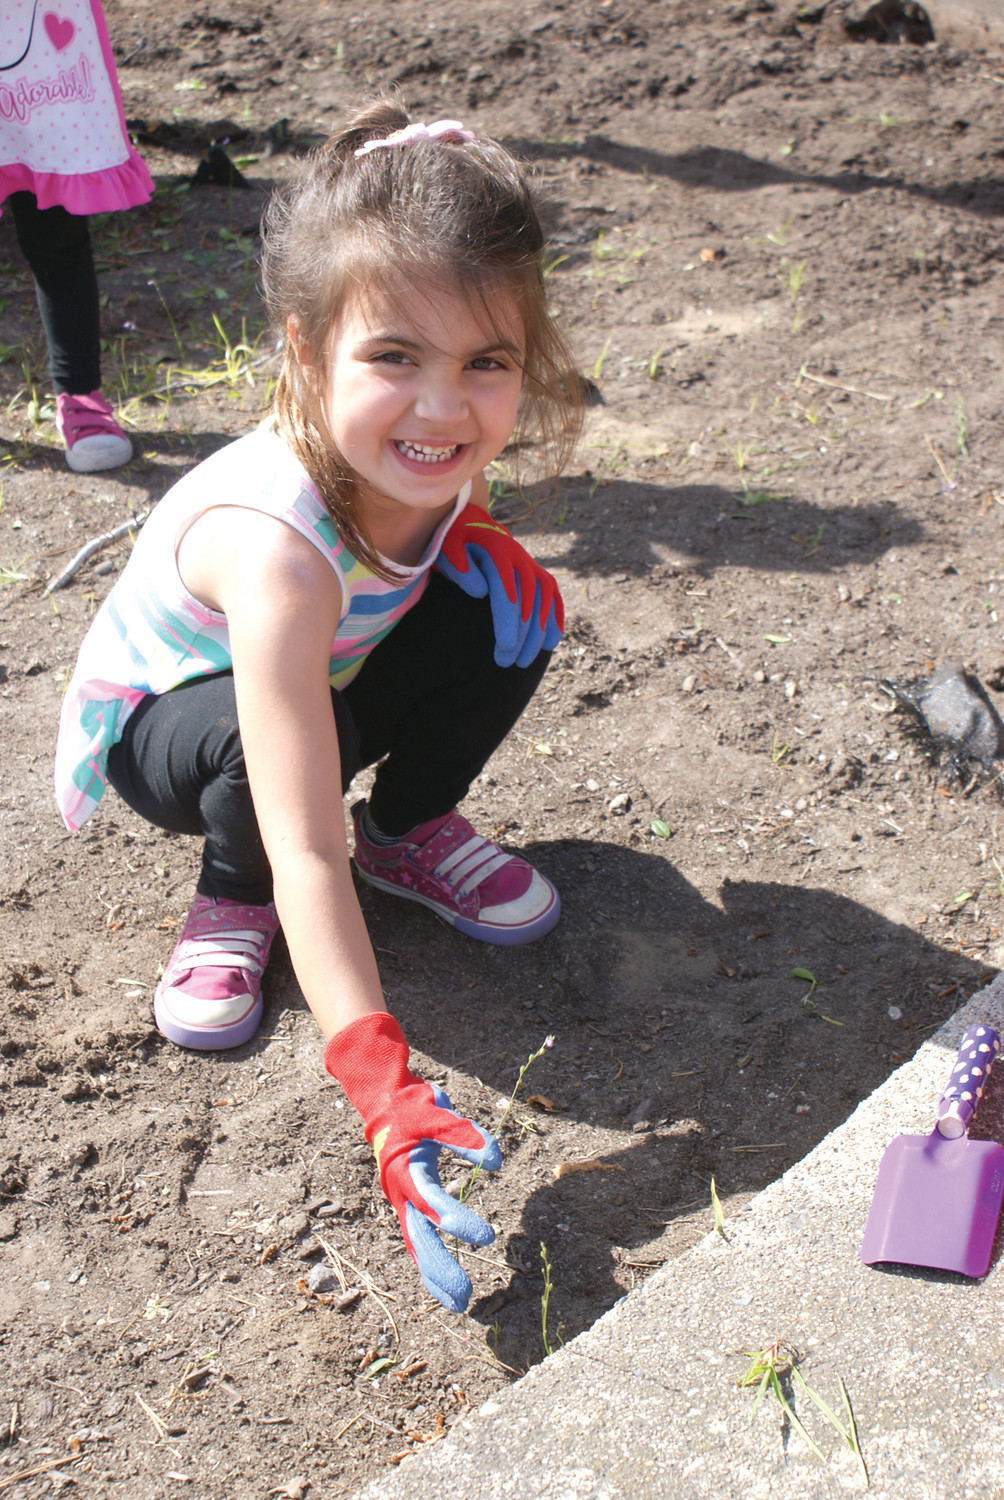 NEVER TOO YOUNG: One of the younger volunteers at the Ward 5 Beautification Project was Annie Agresti, age 4, working at pulling weeds at Sivo Park on Florida Ave.